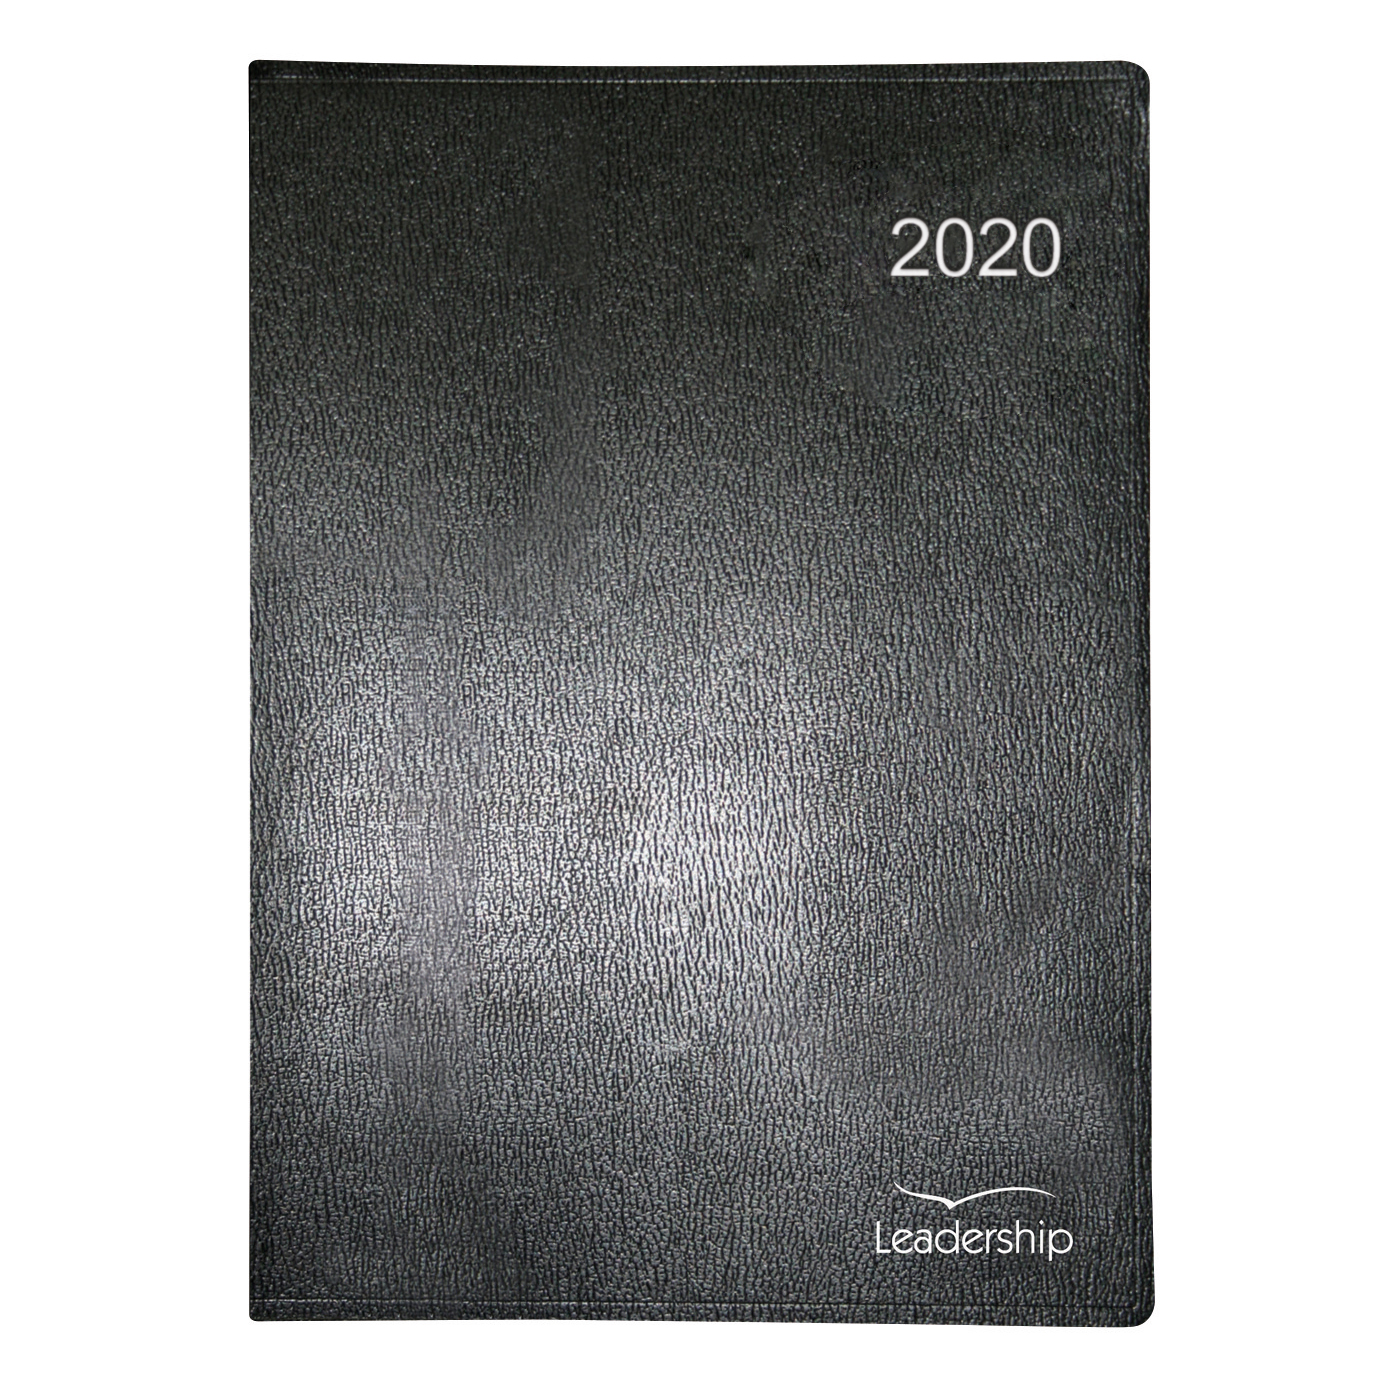 Collins 2020 Leadership Diary Week to View Wirobound A4 297x210mm Black Ref CP6740 2020